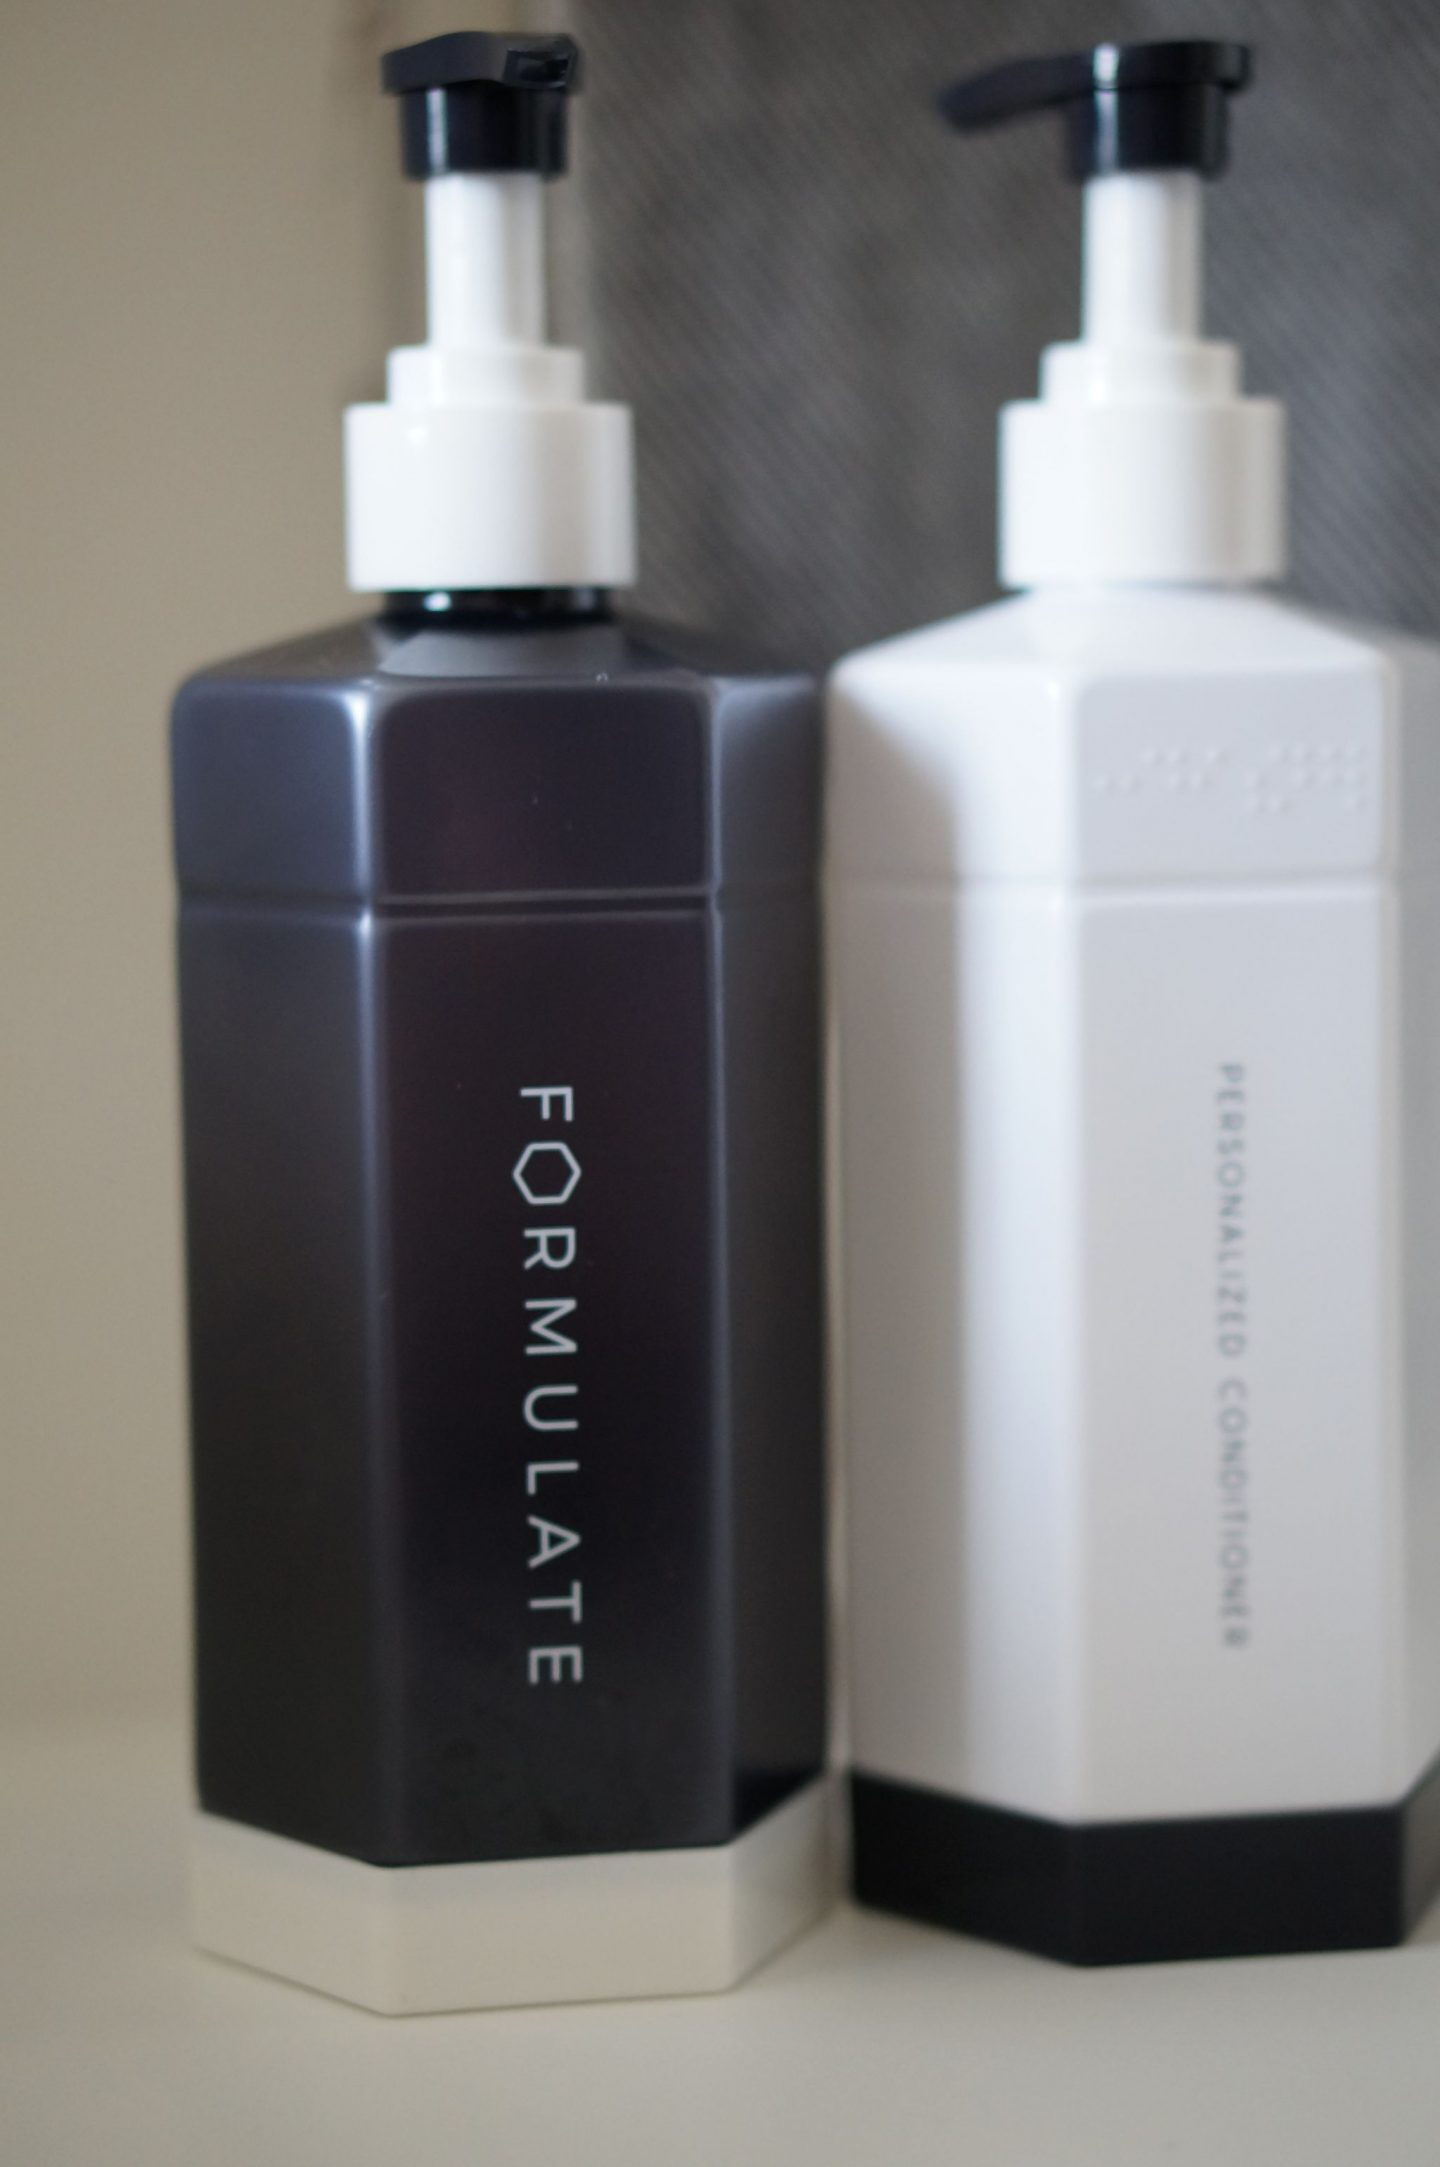 North Carolina style blogger Rebecca Lately shares her review of the brand new Formulate custom shampoo conditioner combo. Be sure to enter the giveaway!